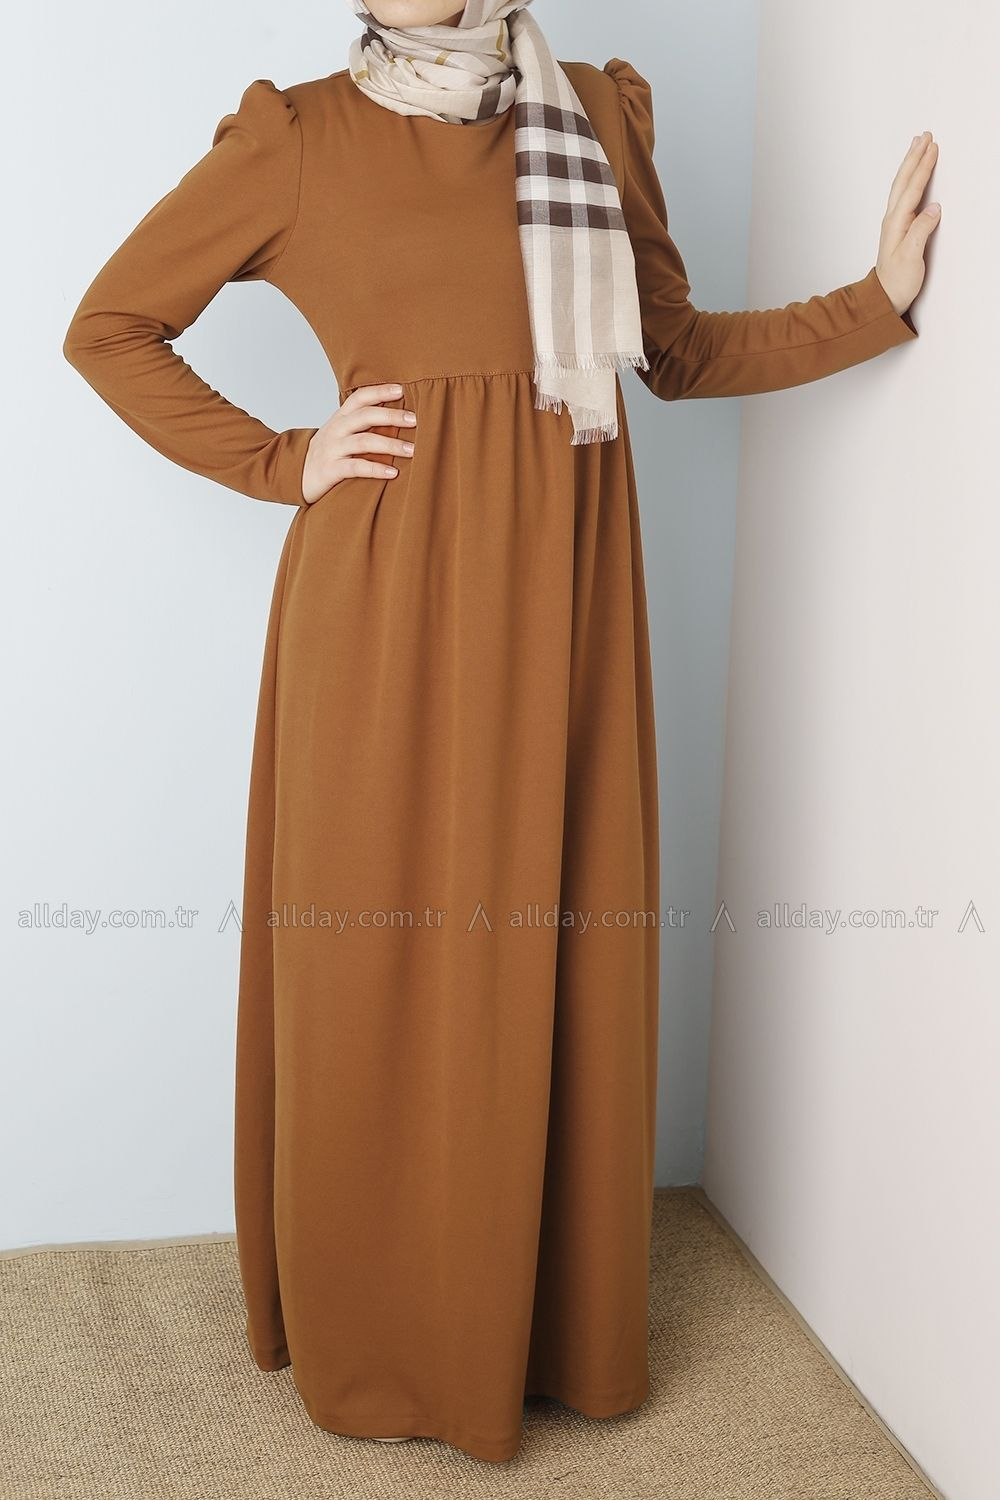 New trend hijab fashion maxi dress from allday turkish fashion hijab outfit pinterest Hijab fashion trends style turkish